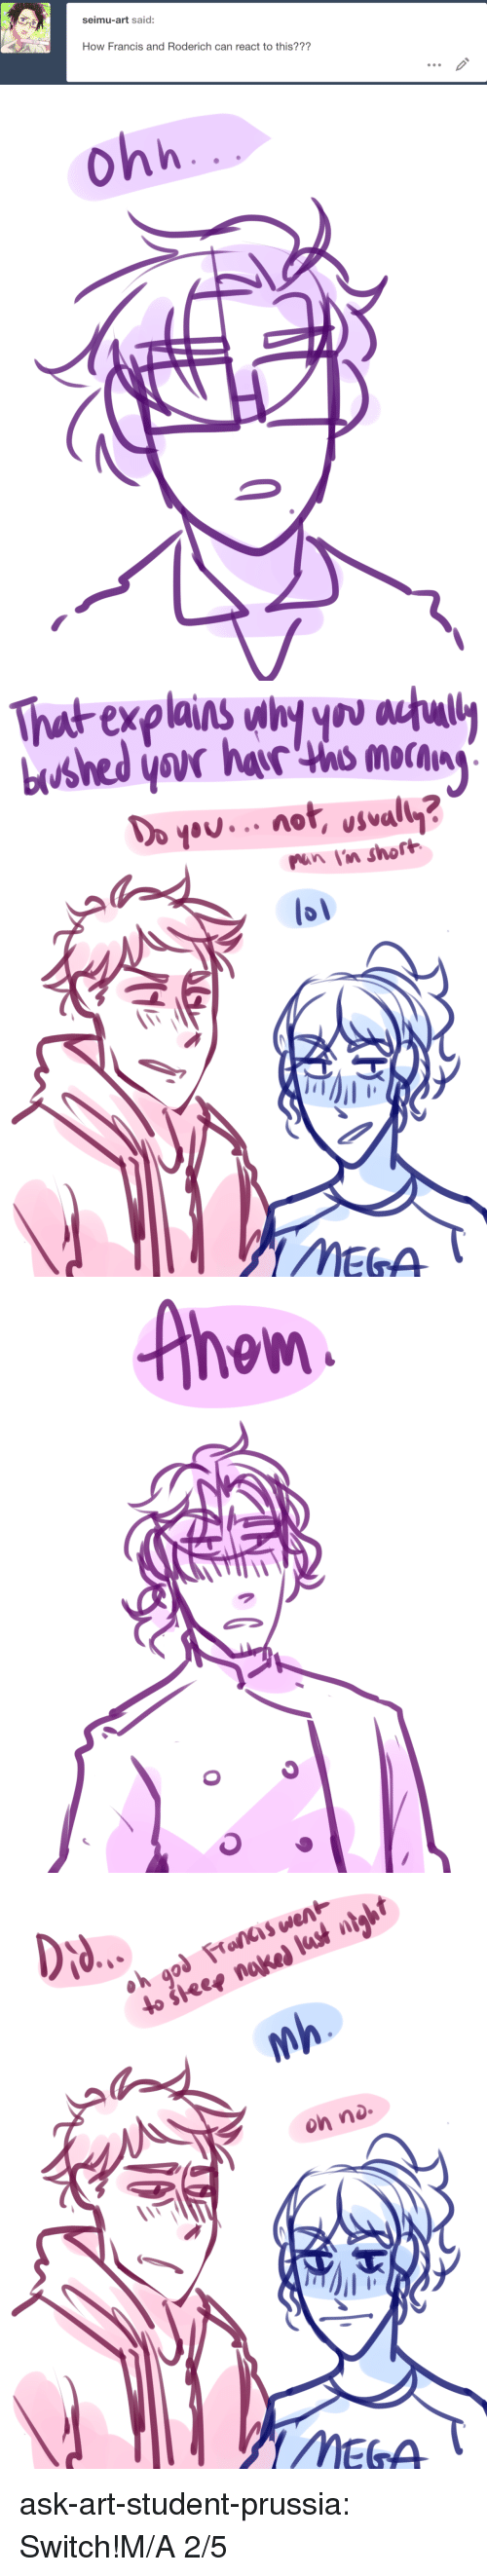 Lol, Target, and Tumblr: seimu-art said:  How Francis and Roderich can react to this???   ohh   That explains why you auul  pan lin short  lol   Ahew   on no.  MEGA ask-art-student-prussia:  Switch!M/A 2/5